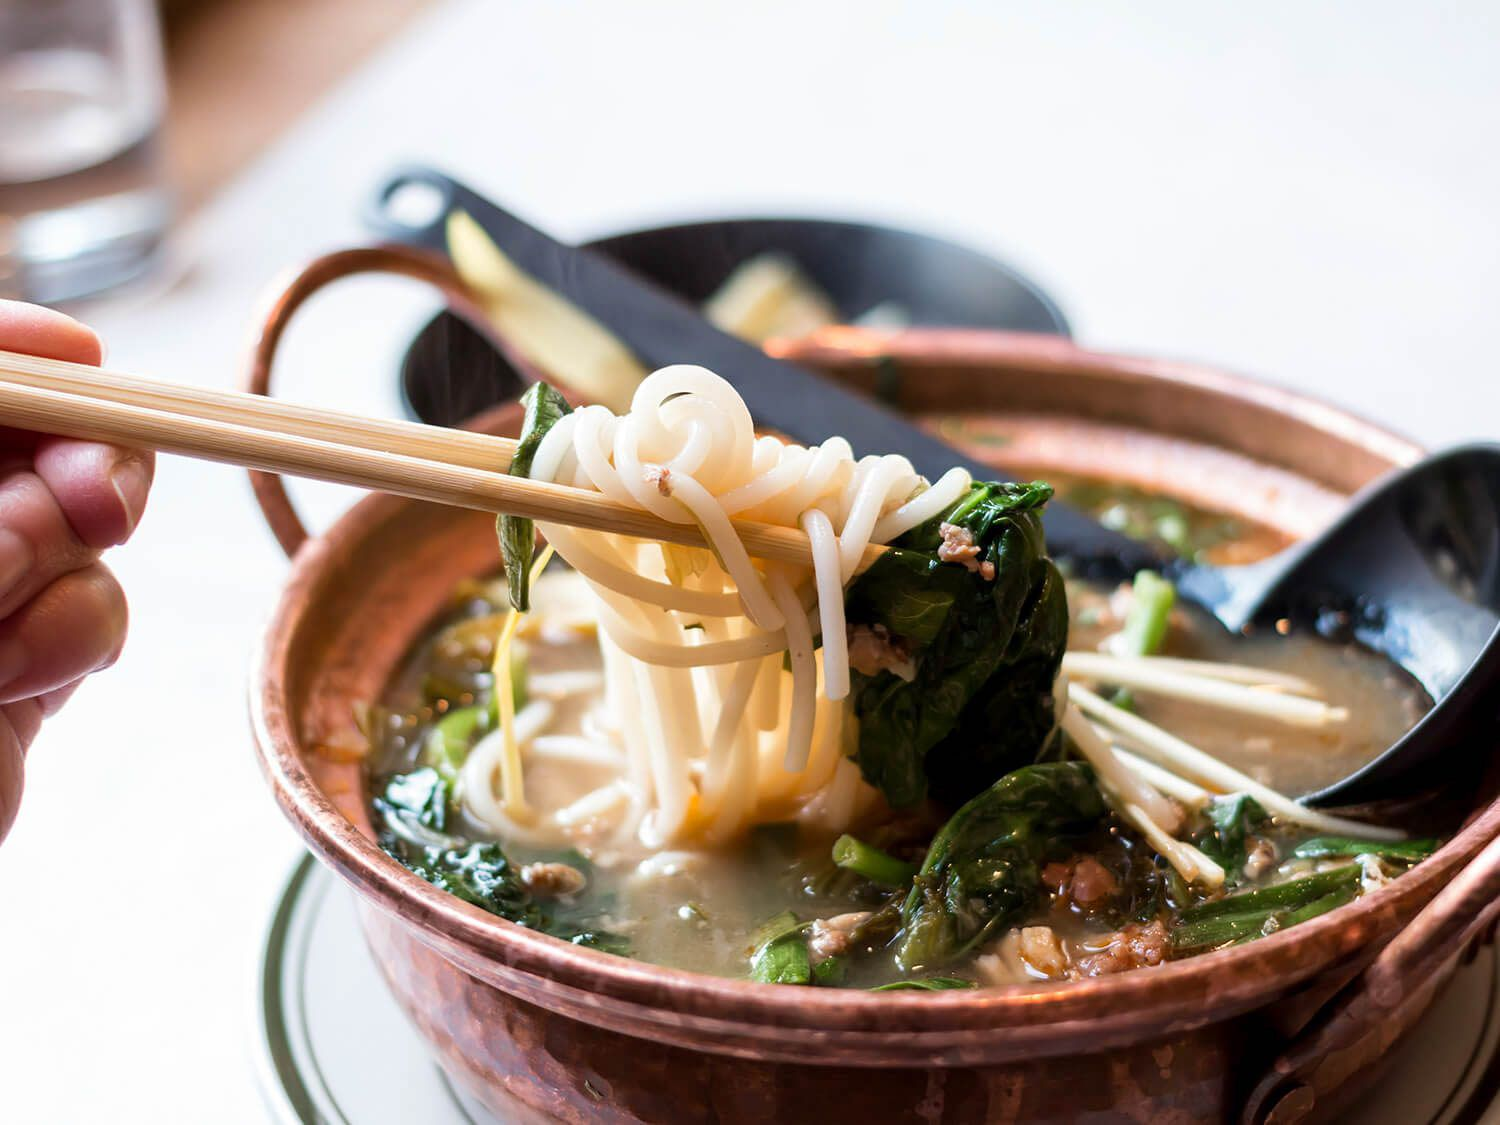 Chopsticks lifting a tangle of noodles, chicken confit, and vegetables out of a bowl